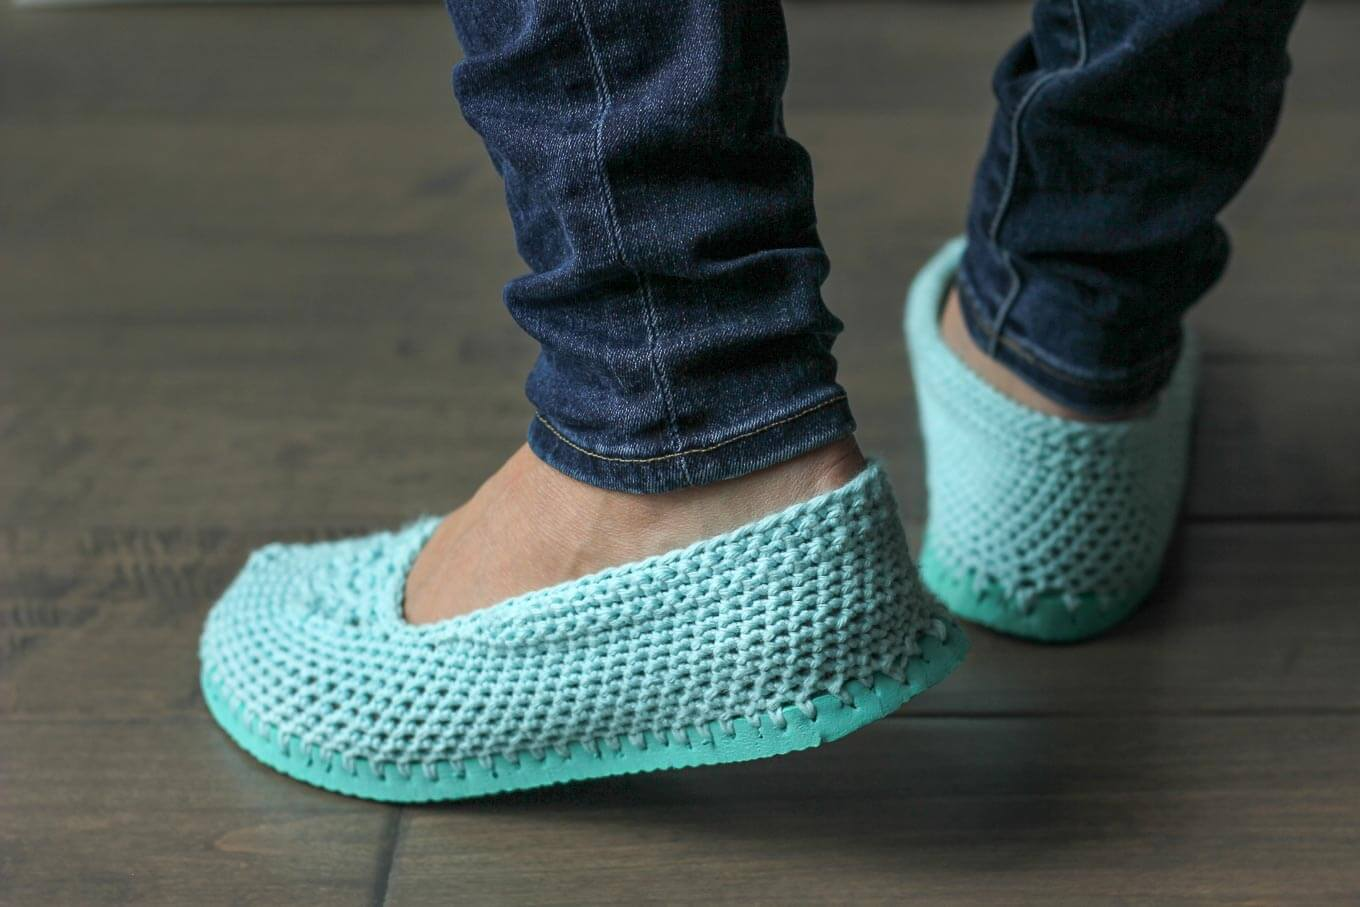 Crochet Patterns Using Flip Flops : Free Crochet Slippers Pattern (With Flip Flop Soles!)